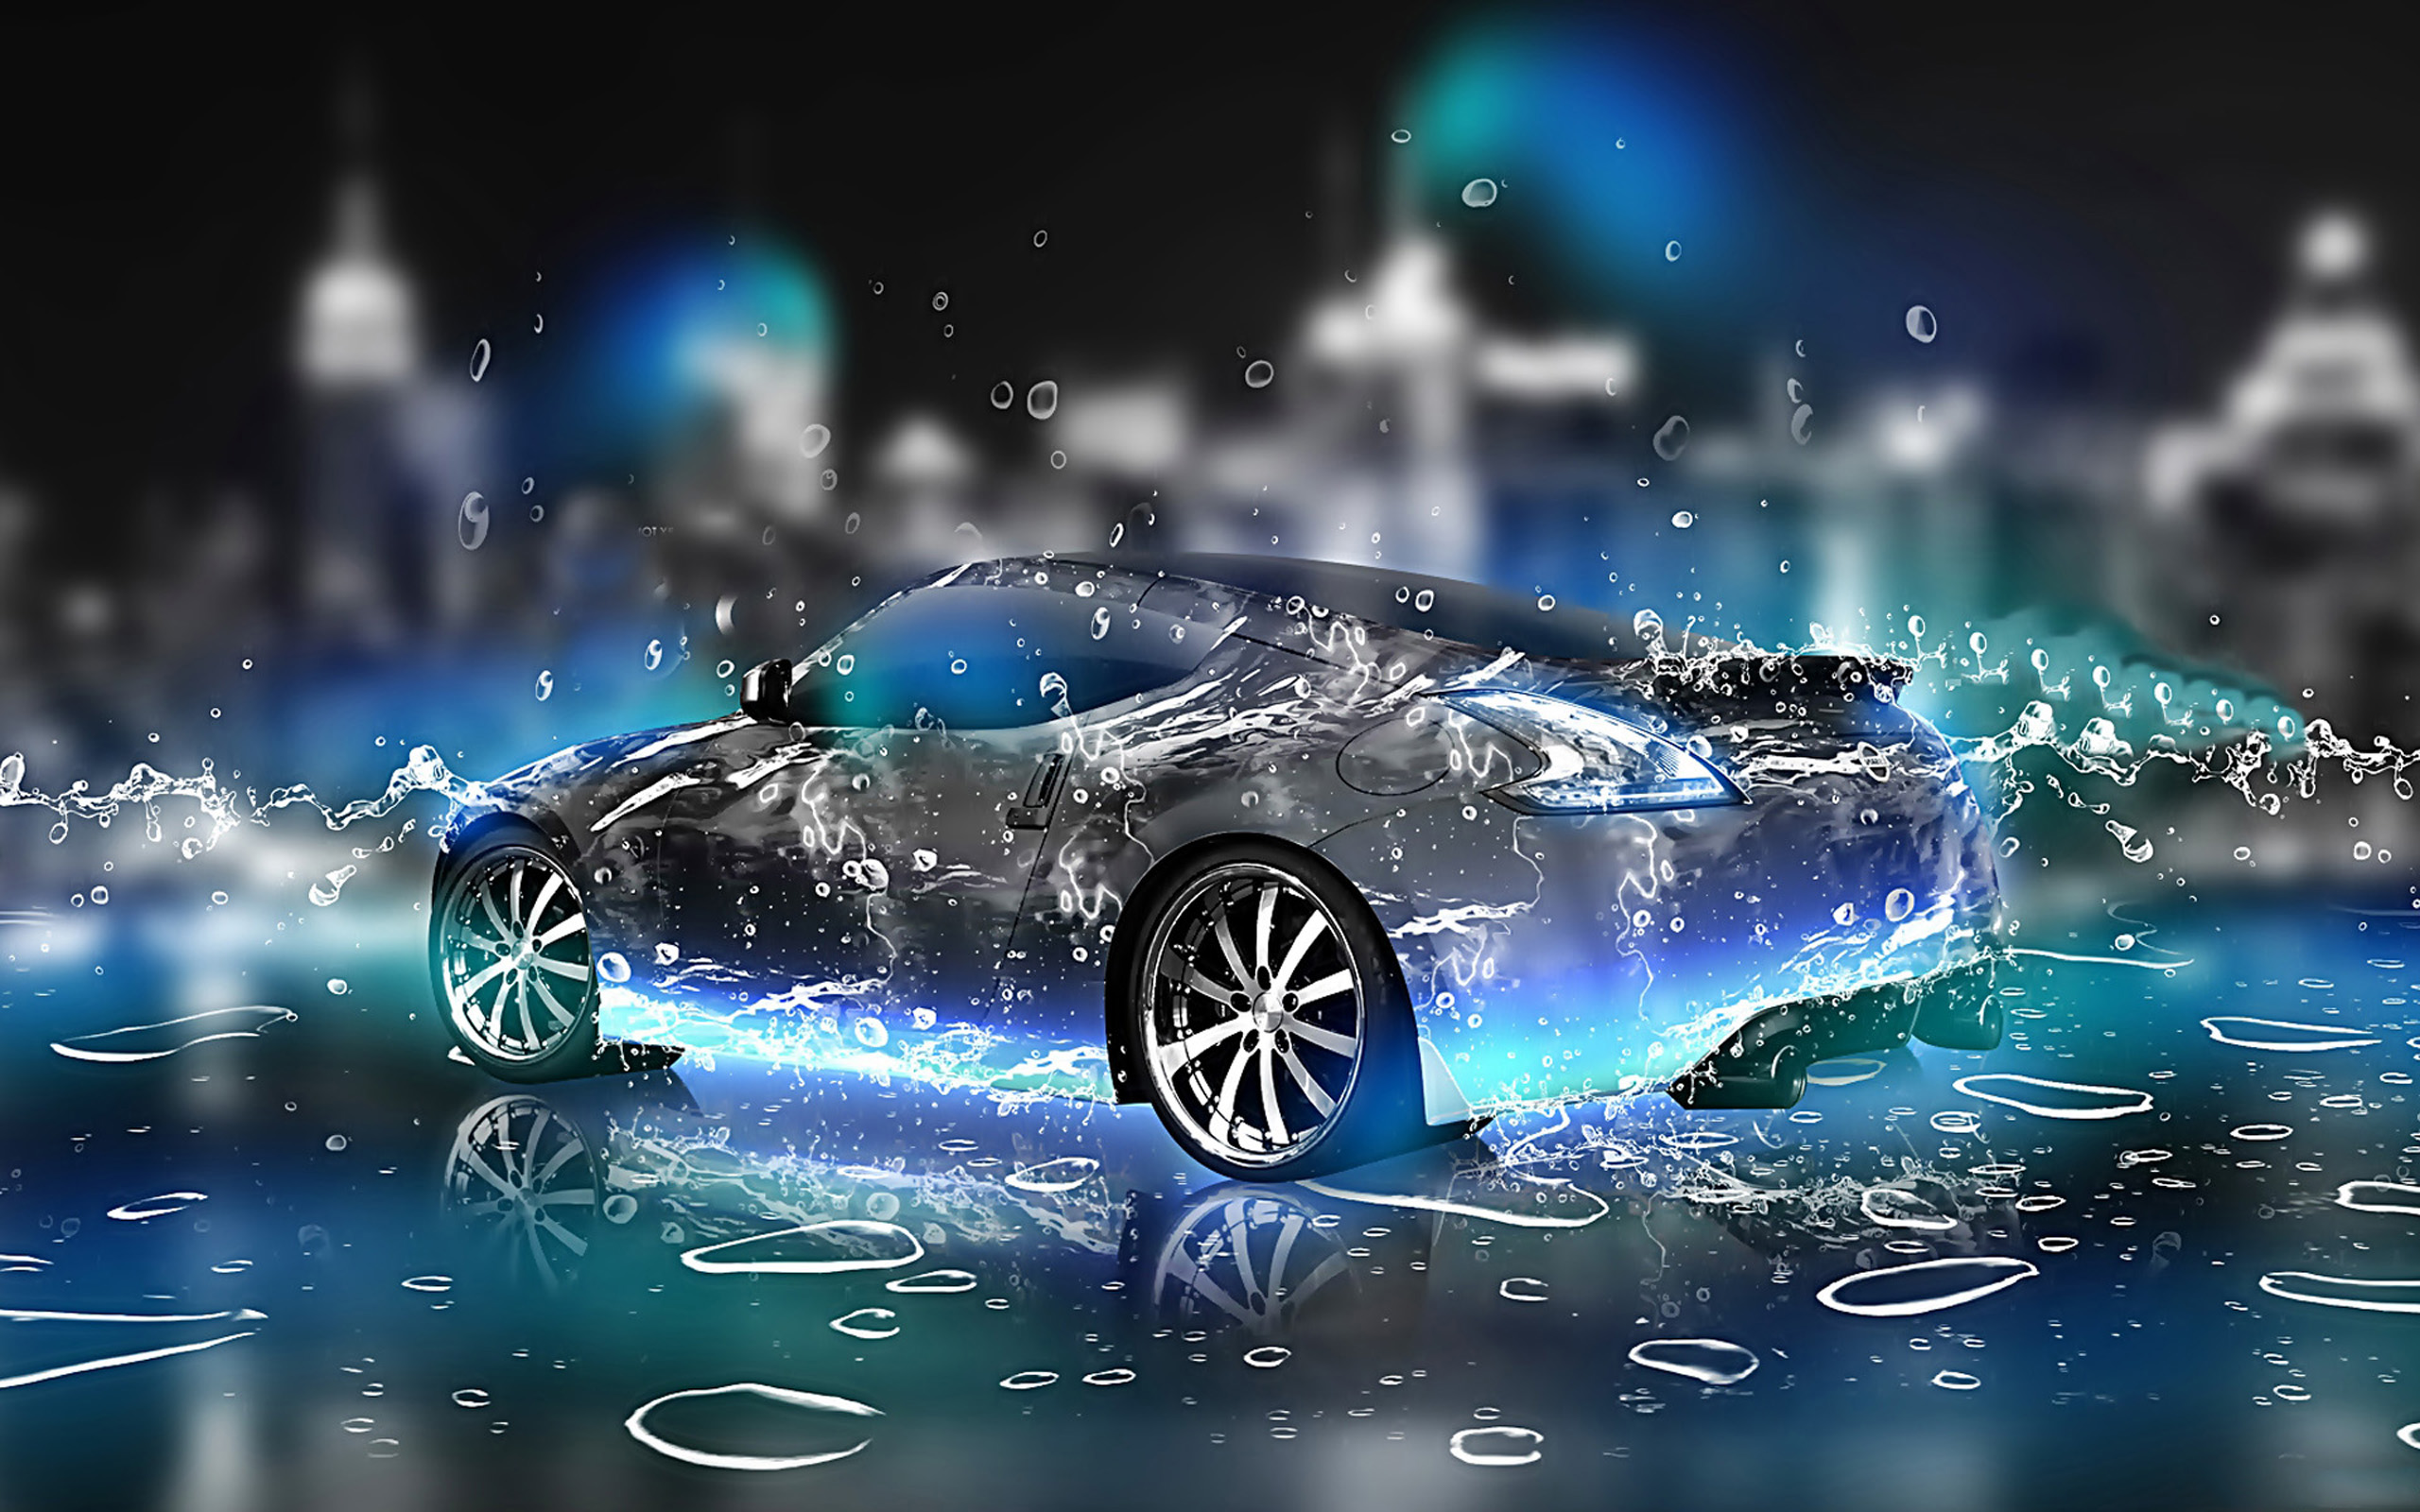 wallpaper.wiki-3d-car-hd-pictures-widescreen-hd-hq-latest-water